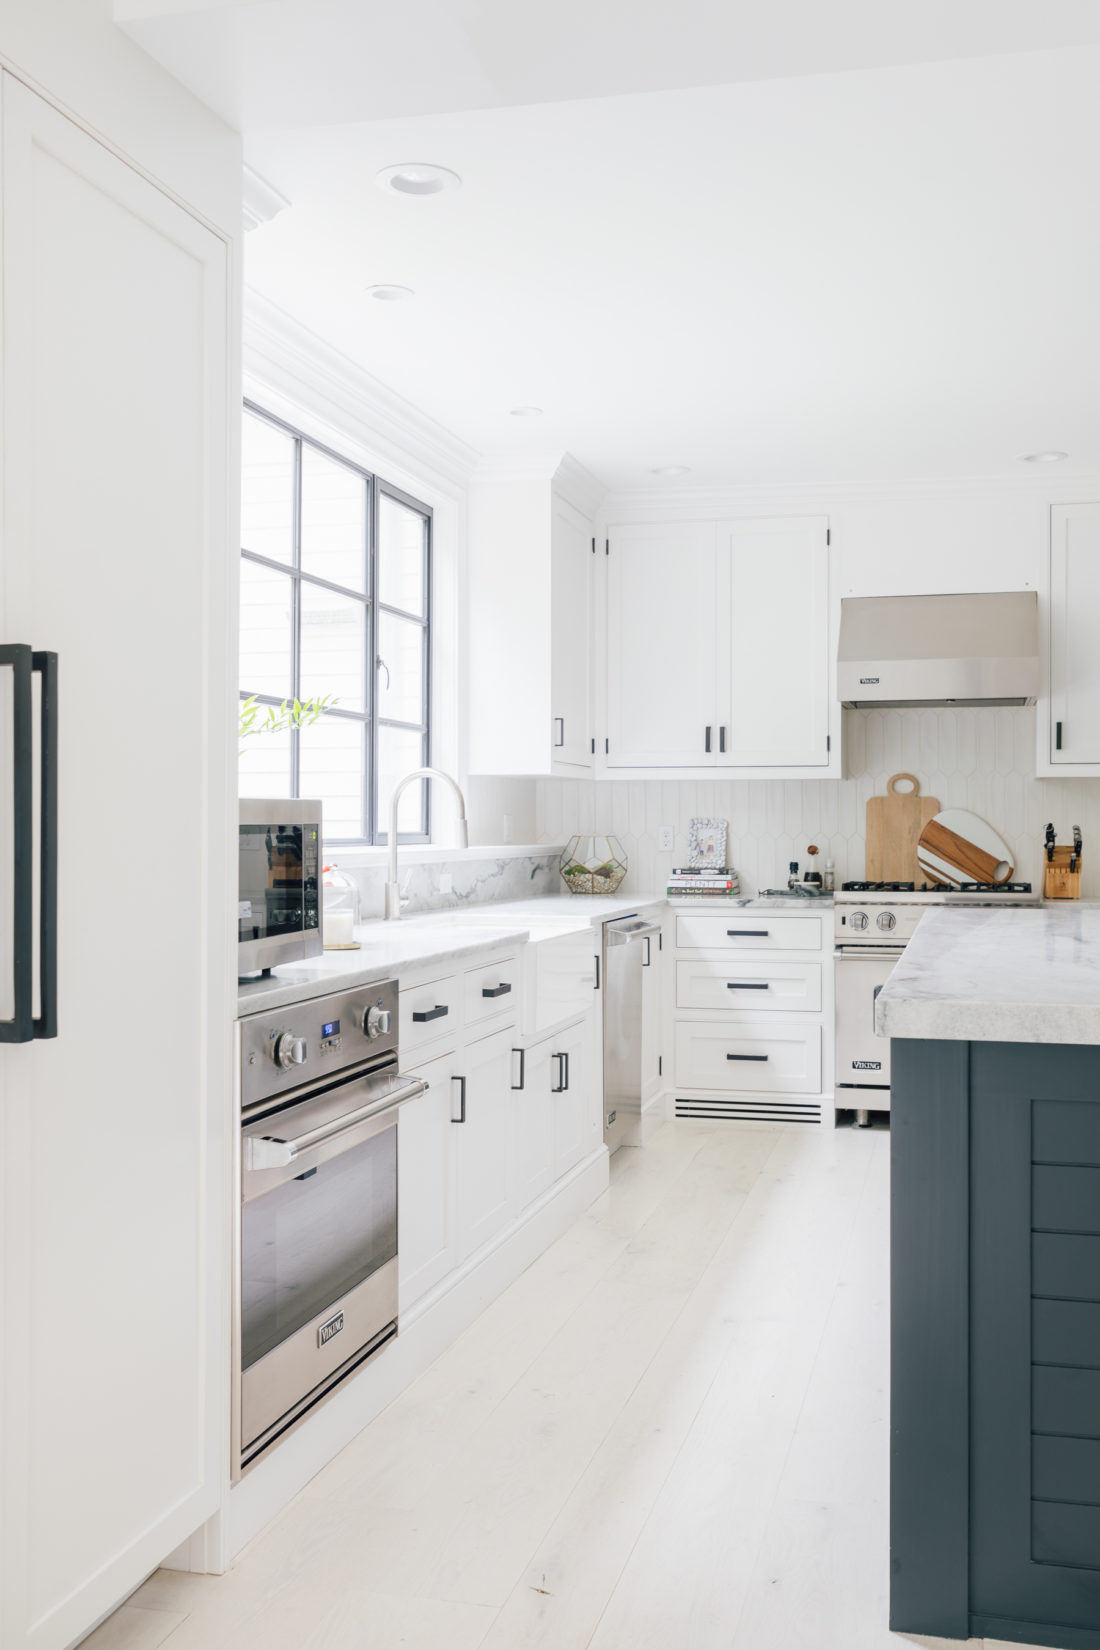 Eva Amurri Martino shares her renovated kitchen in her historical Connecticut home, featuring an open plan and a modern look